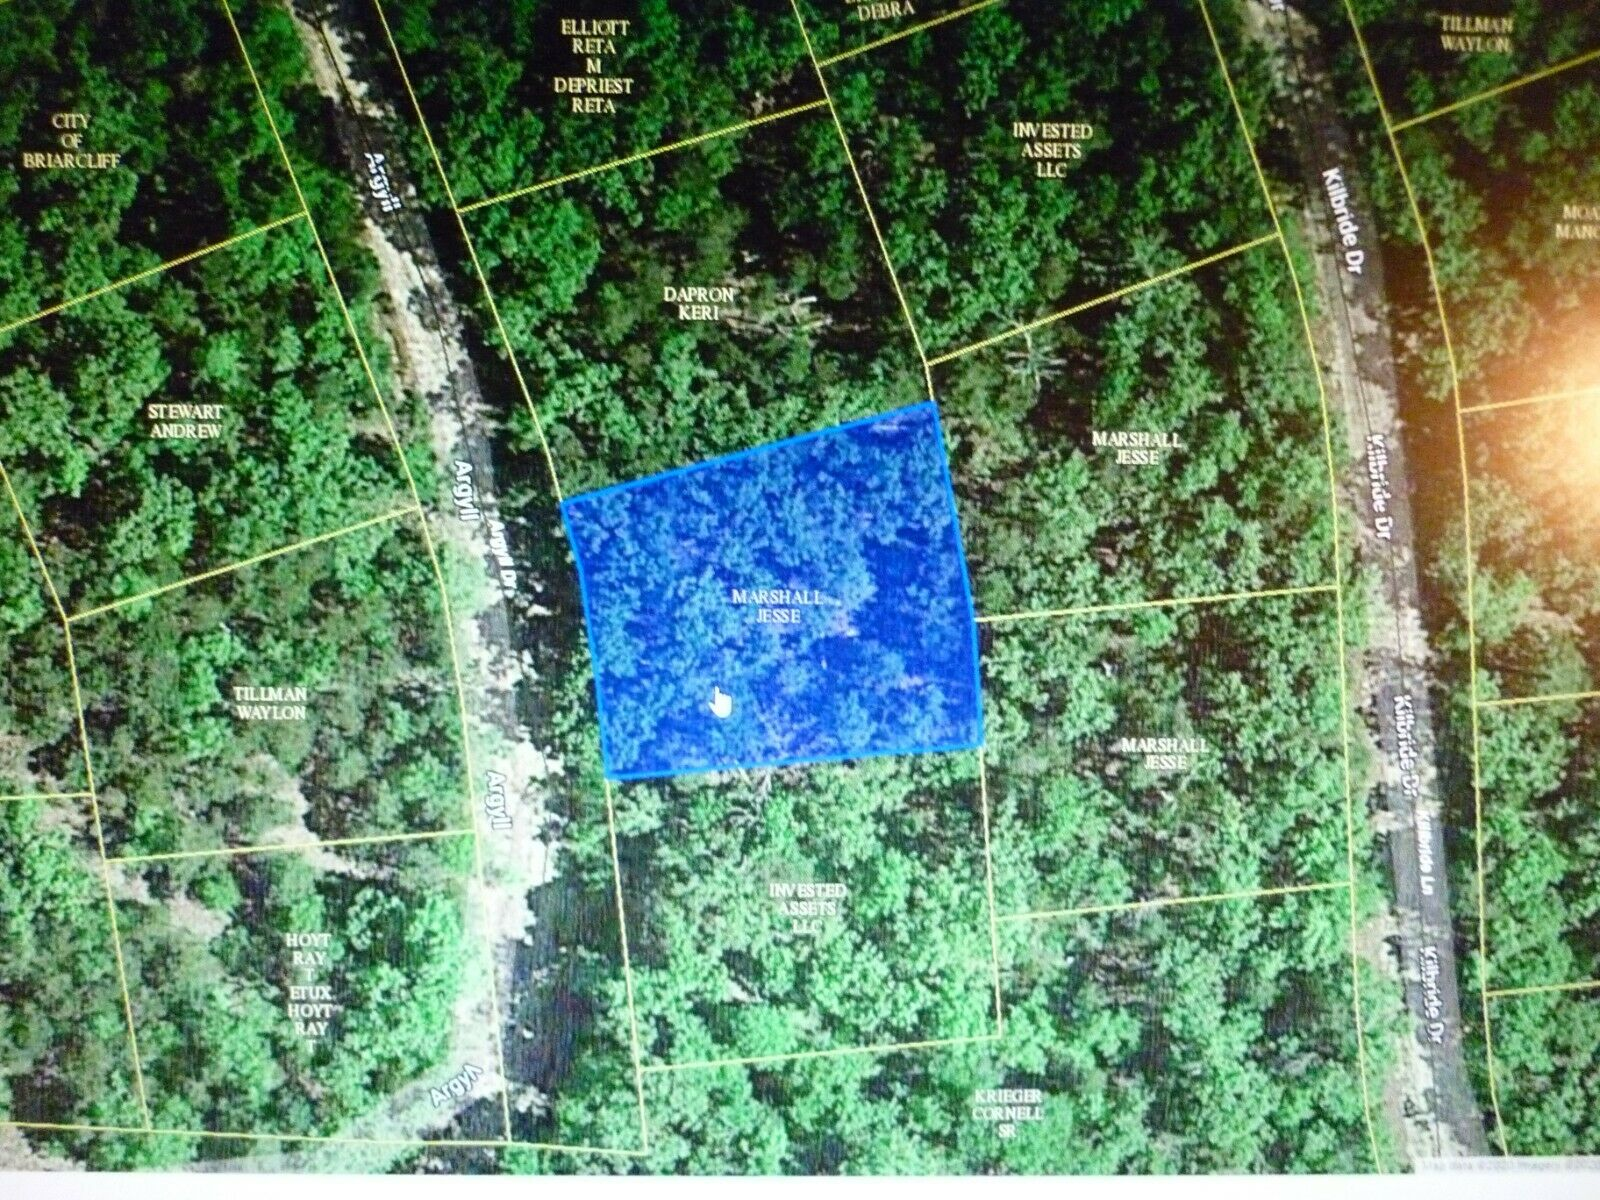 10021 Sq Ft .2301 Ac Briarcliff, AR- HALF Mile To Norfork Lake POWER CLOSE BY - $1.00